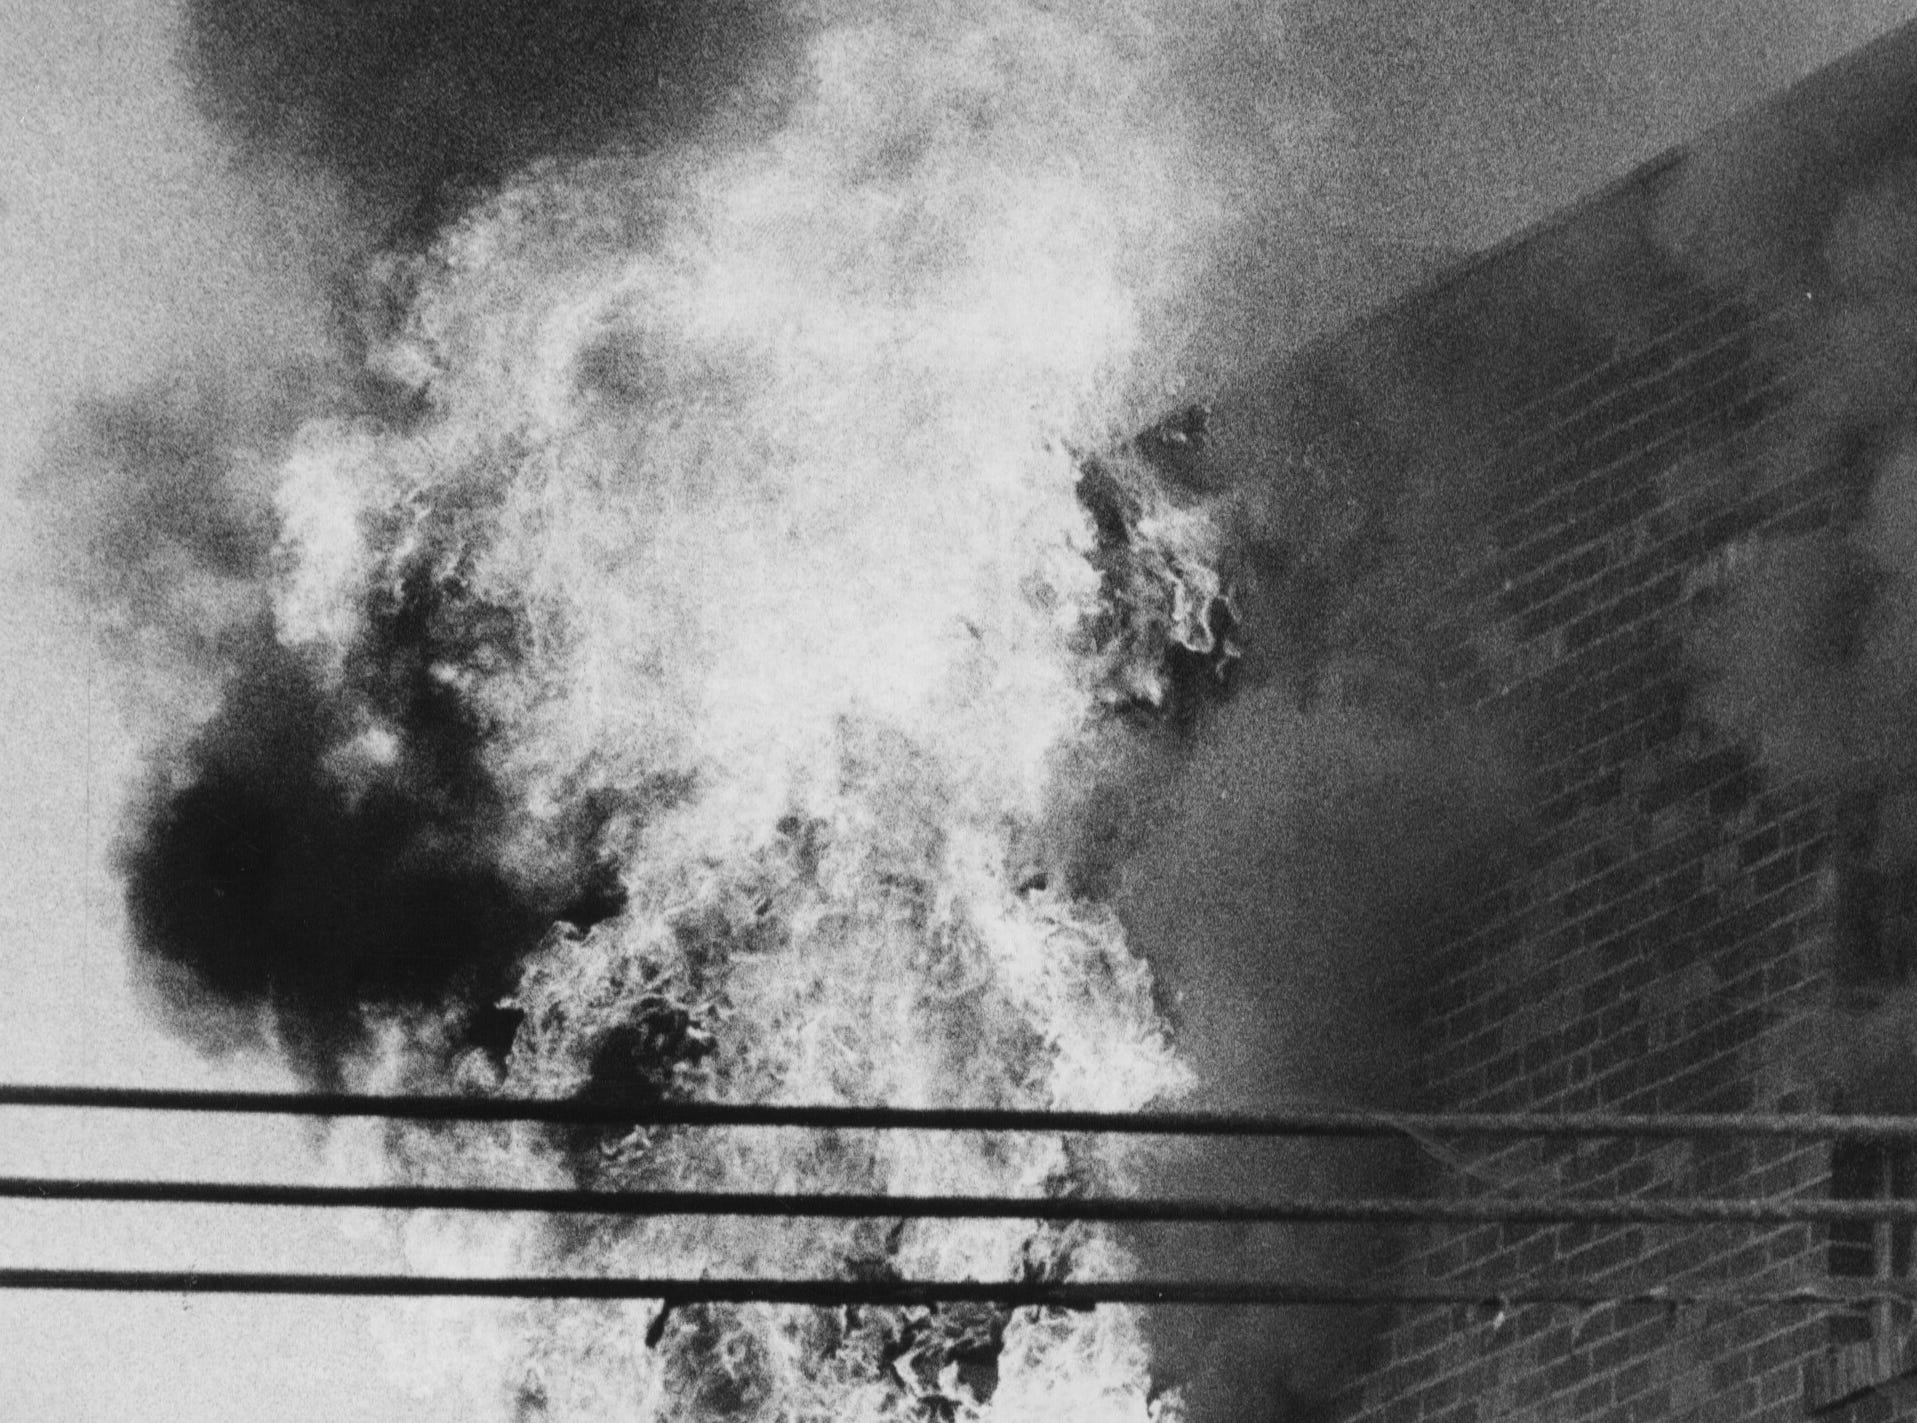 At the bottom of the stairs (far right) the firemen regroup for a second attempt.